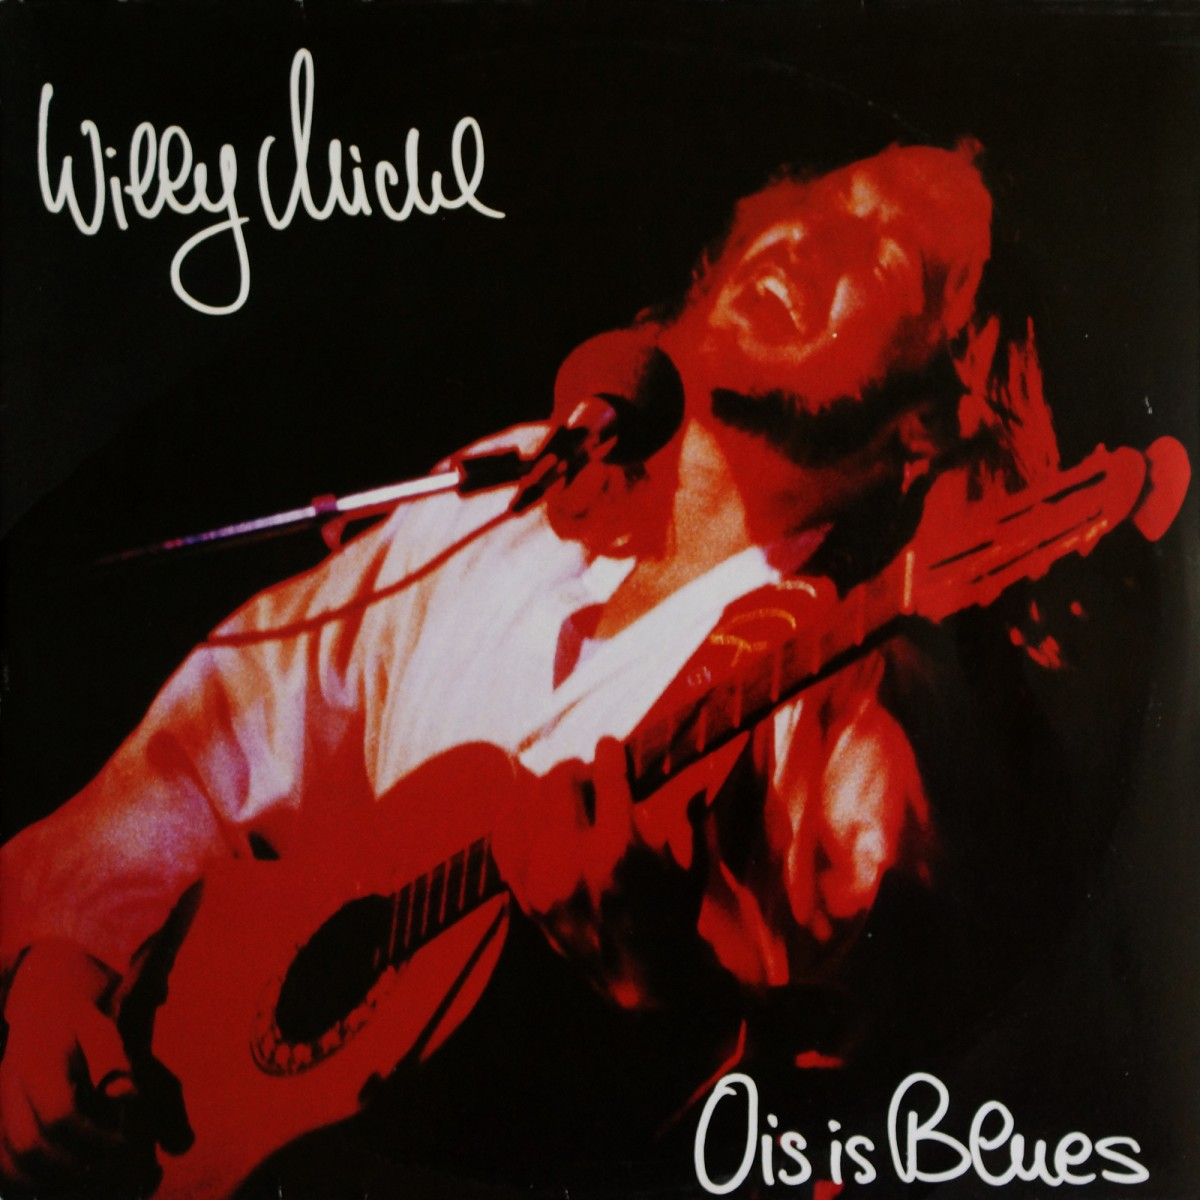 Michl, Willy: Ois is Blues (1979)